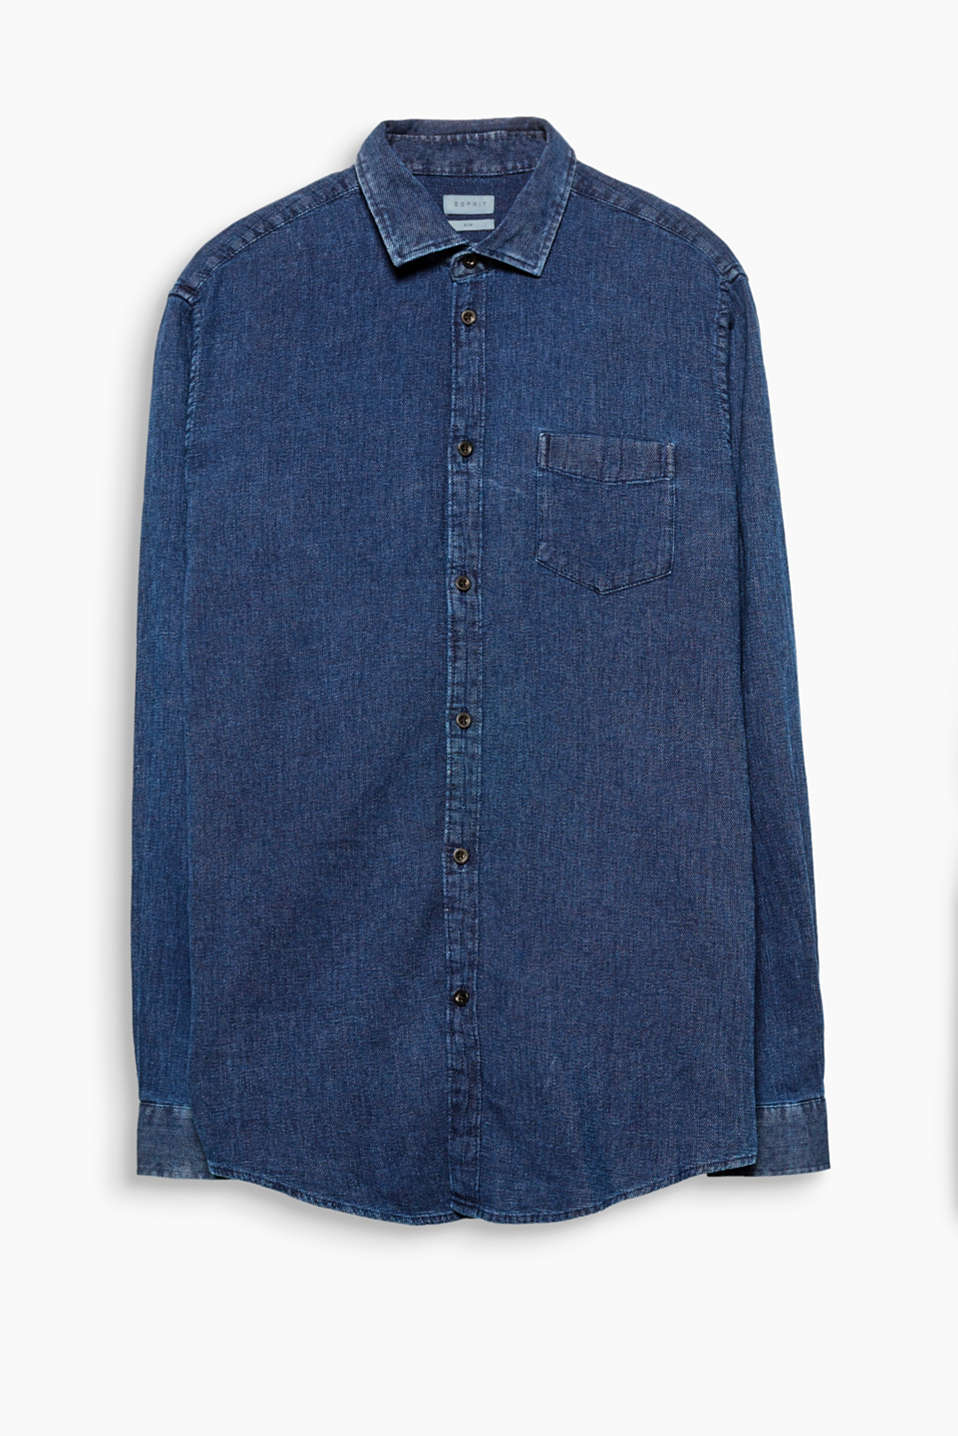 Textured cotton shirt with a shark collar and indigo dye